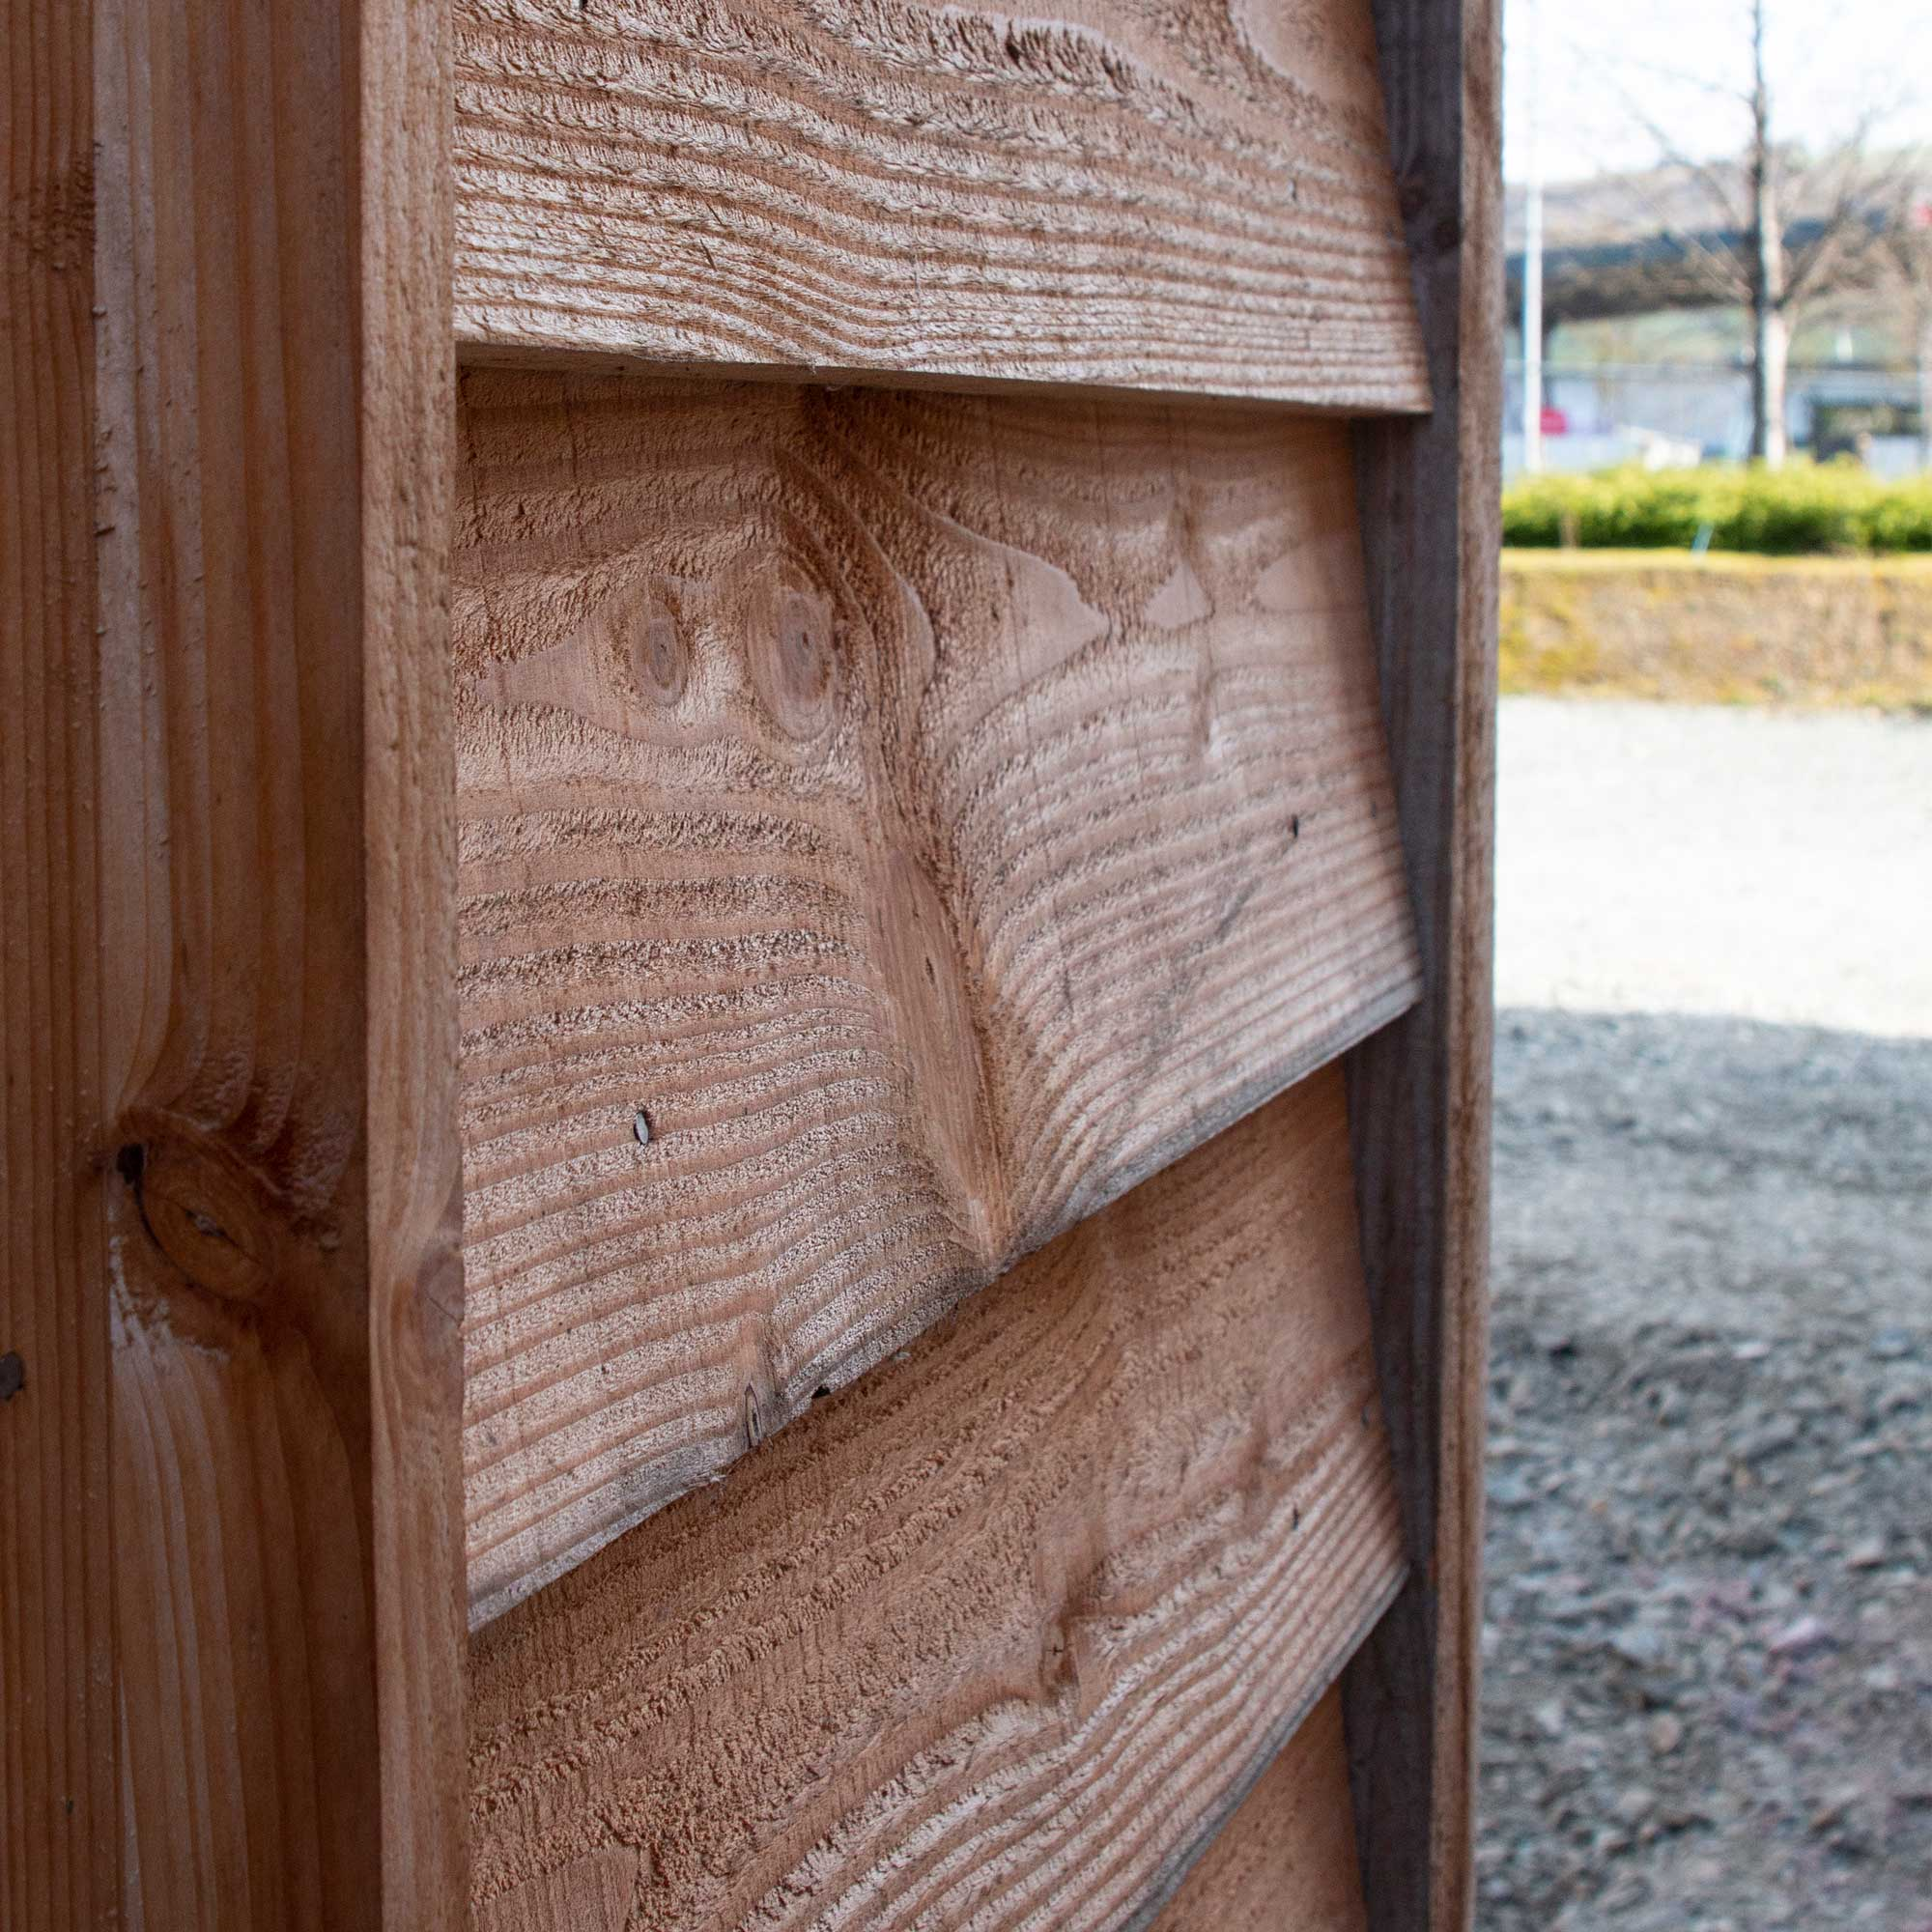 Welsh timber cladding detail on Passivhaus office